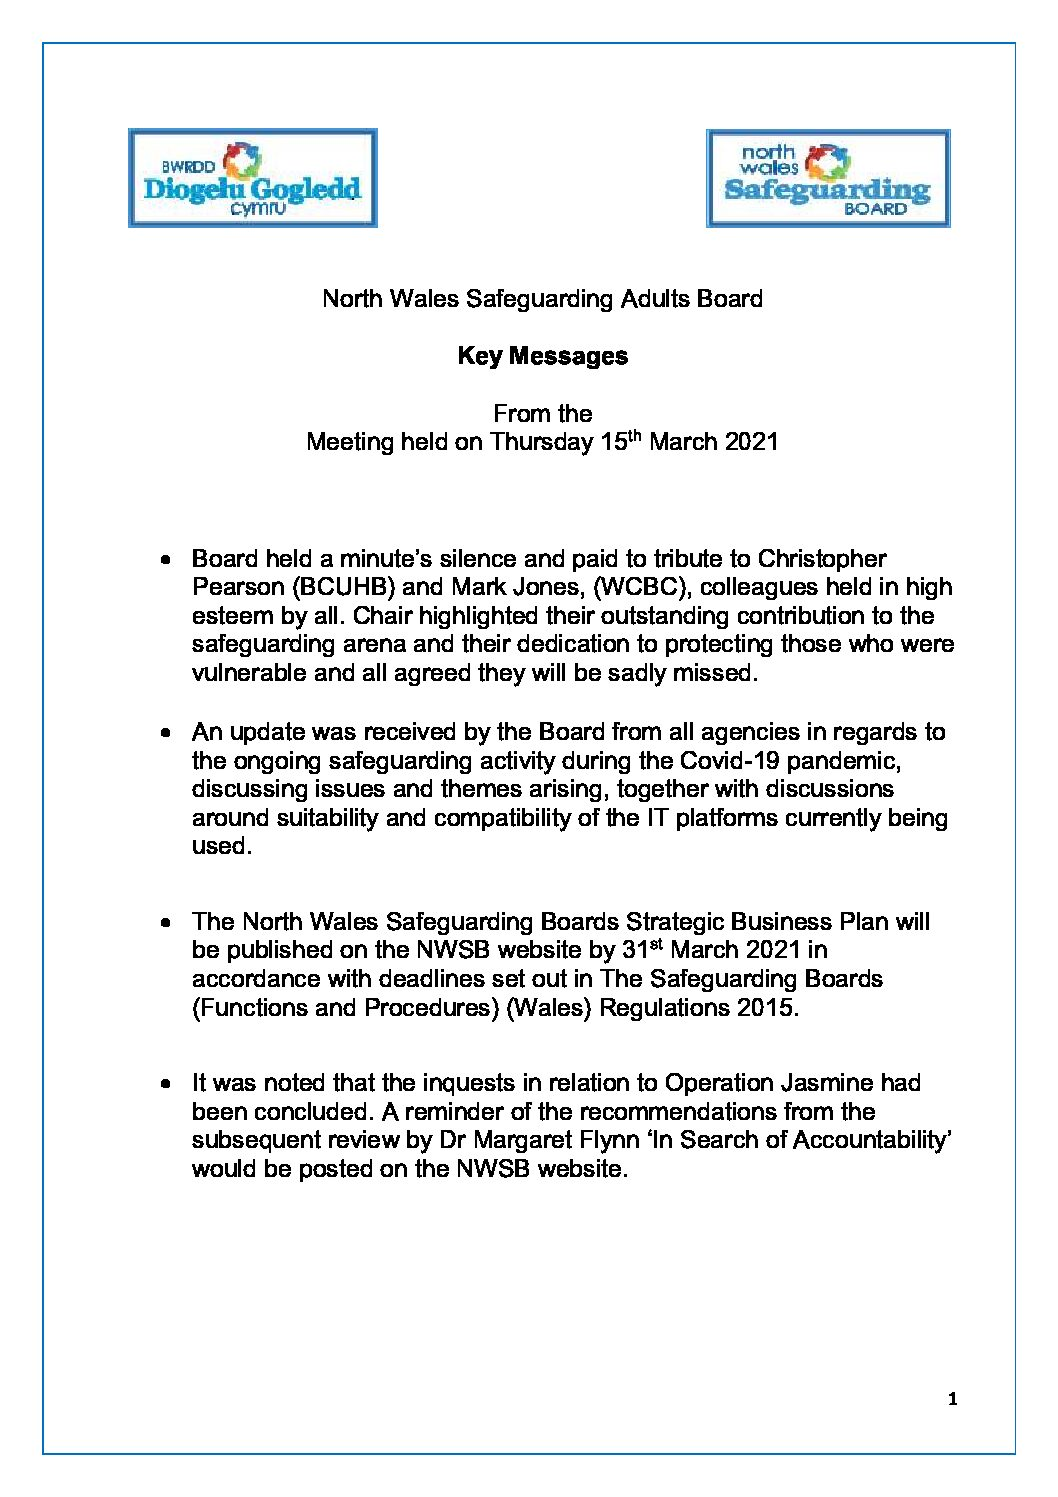 NWSAB Key Messages March 2021